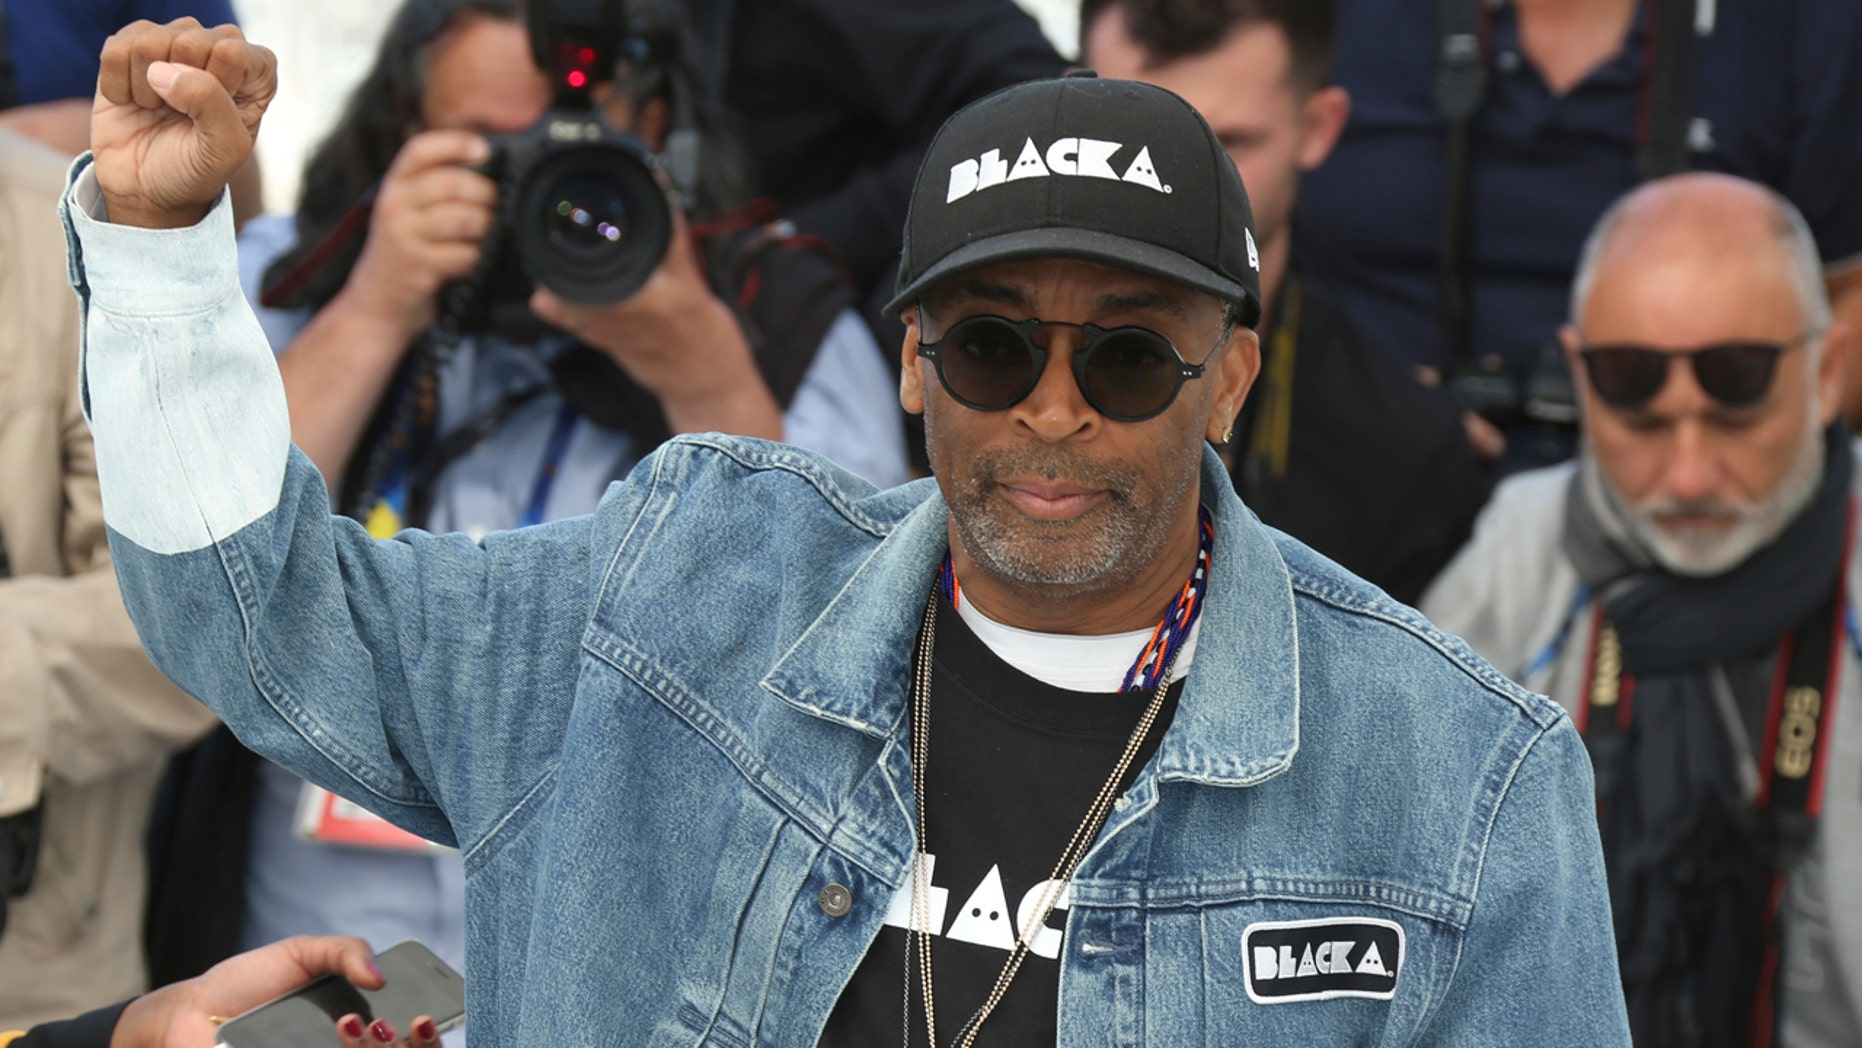 Spike Lee called out President Trump during his speech at the premiere of his new film, 'BlacKkKlansman,' accusing him of mishandling the Charlottesville white supremacy protests.